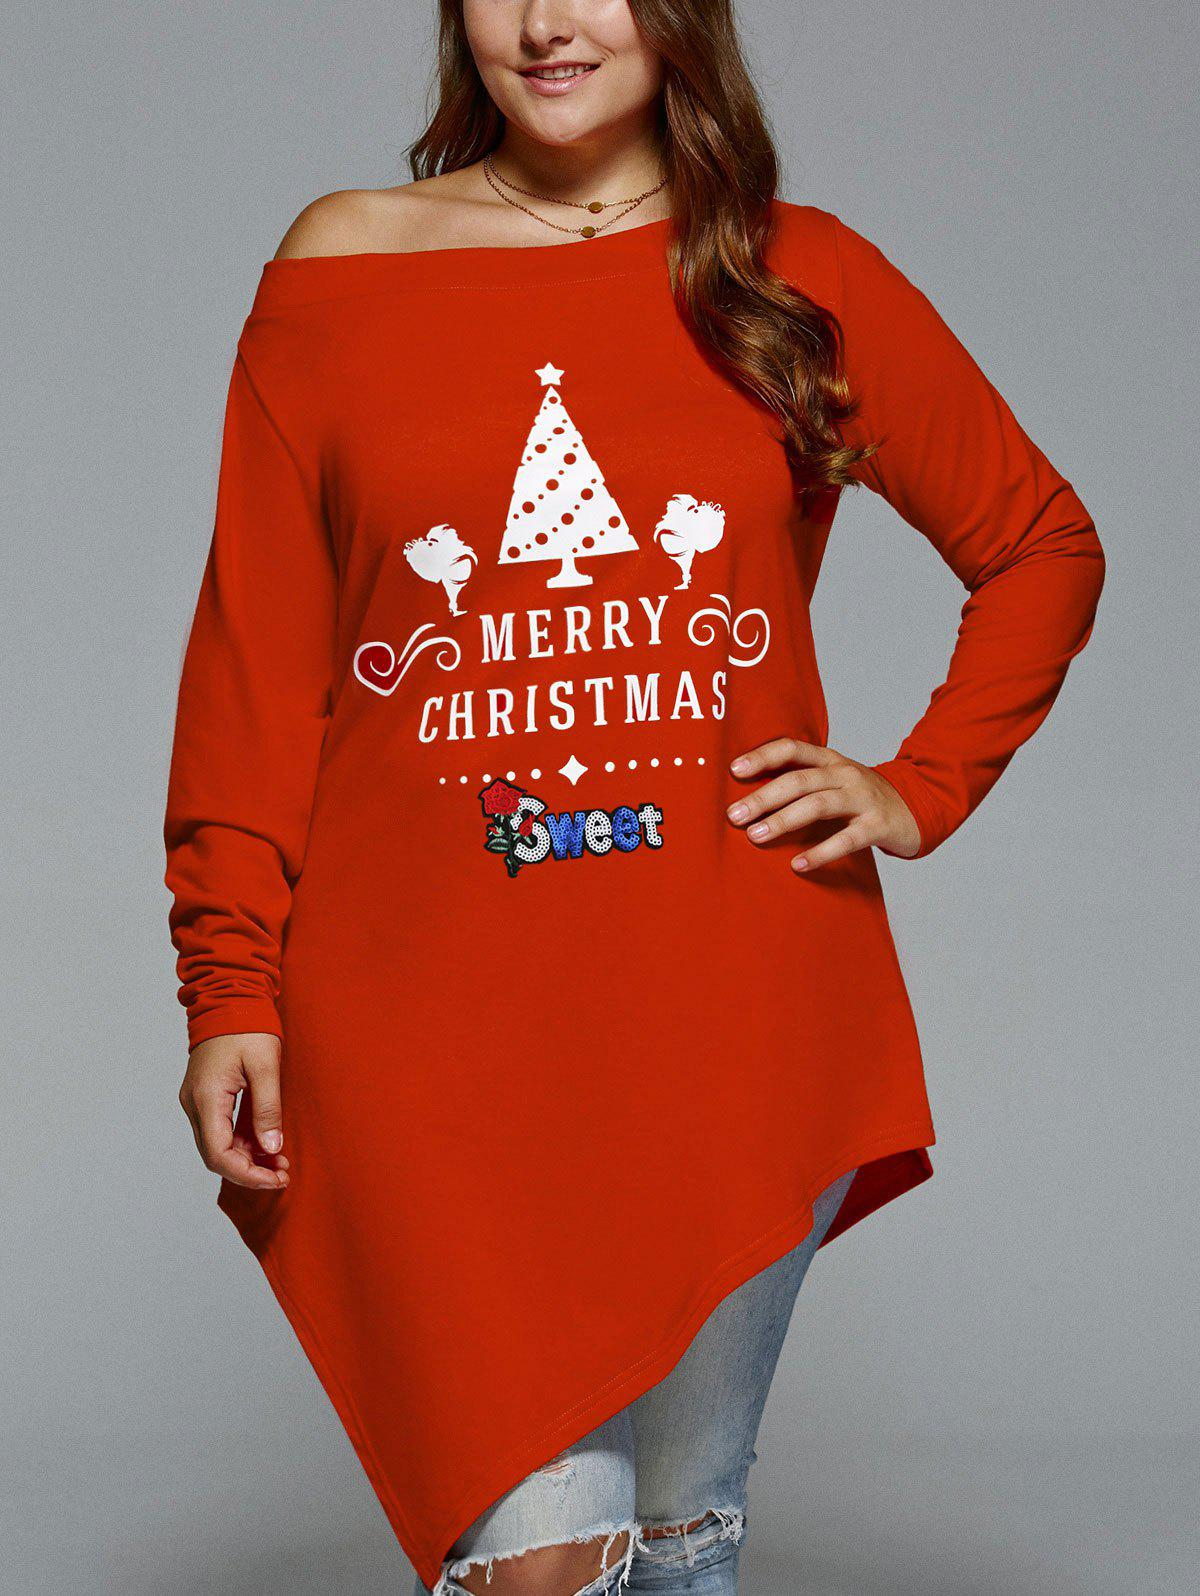 Christmas Skew Neck Plus Size Asymmetrical T-shirtWOMEN<br><br>Size: 5XL; Color: RED; Material: Polyester,Spandex; Shirt Length: Long; Sleeve Length: Full; Collar: Skew Collar; Style: Casual; Season: Fall,Spring,Winter; Embellishment: Appliques; Pattern Type: Print; Elasticity: Elastic; Weight: 0.3600kg; Package Contents: 1 x T-shirt;